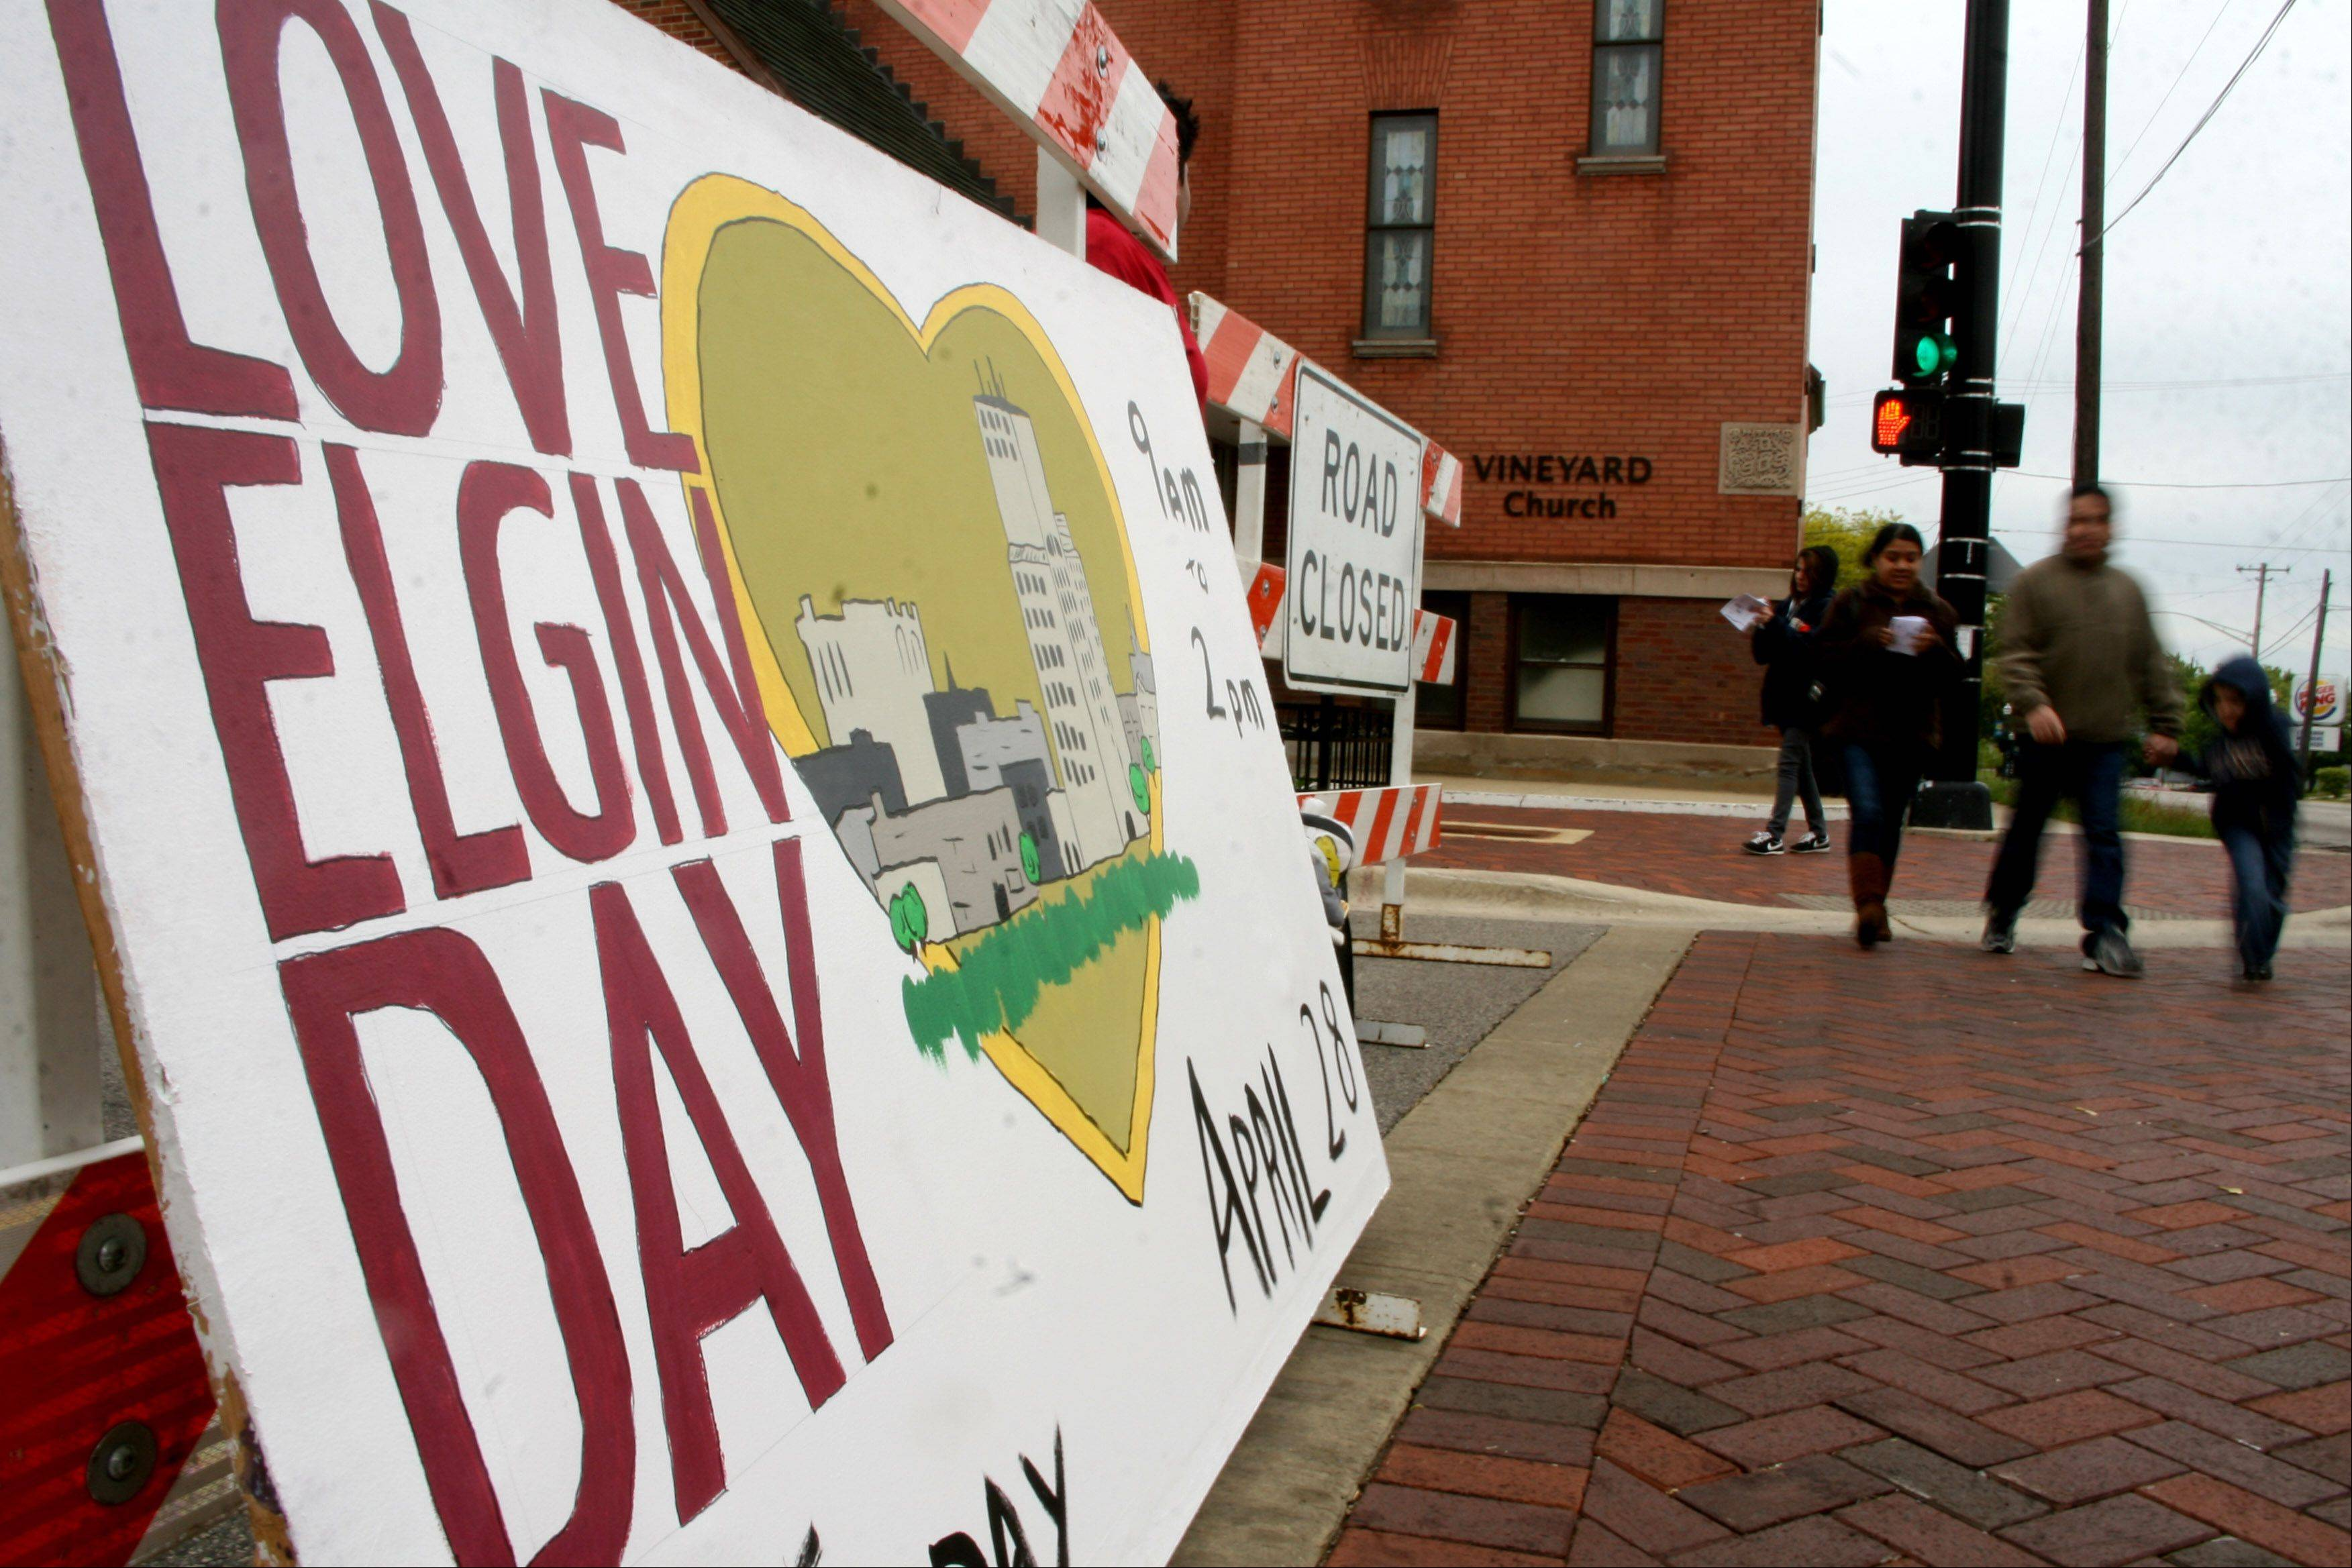 Love Elgin Day, an outreach offering food, clothing and services to the needy, will take place Saturday, Sept. 28. Up to 40 area churches will participate. This will be the fourth time the event will be held.